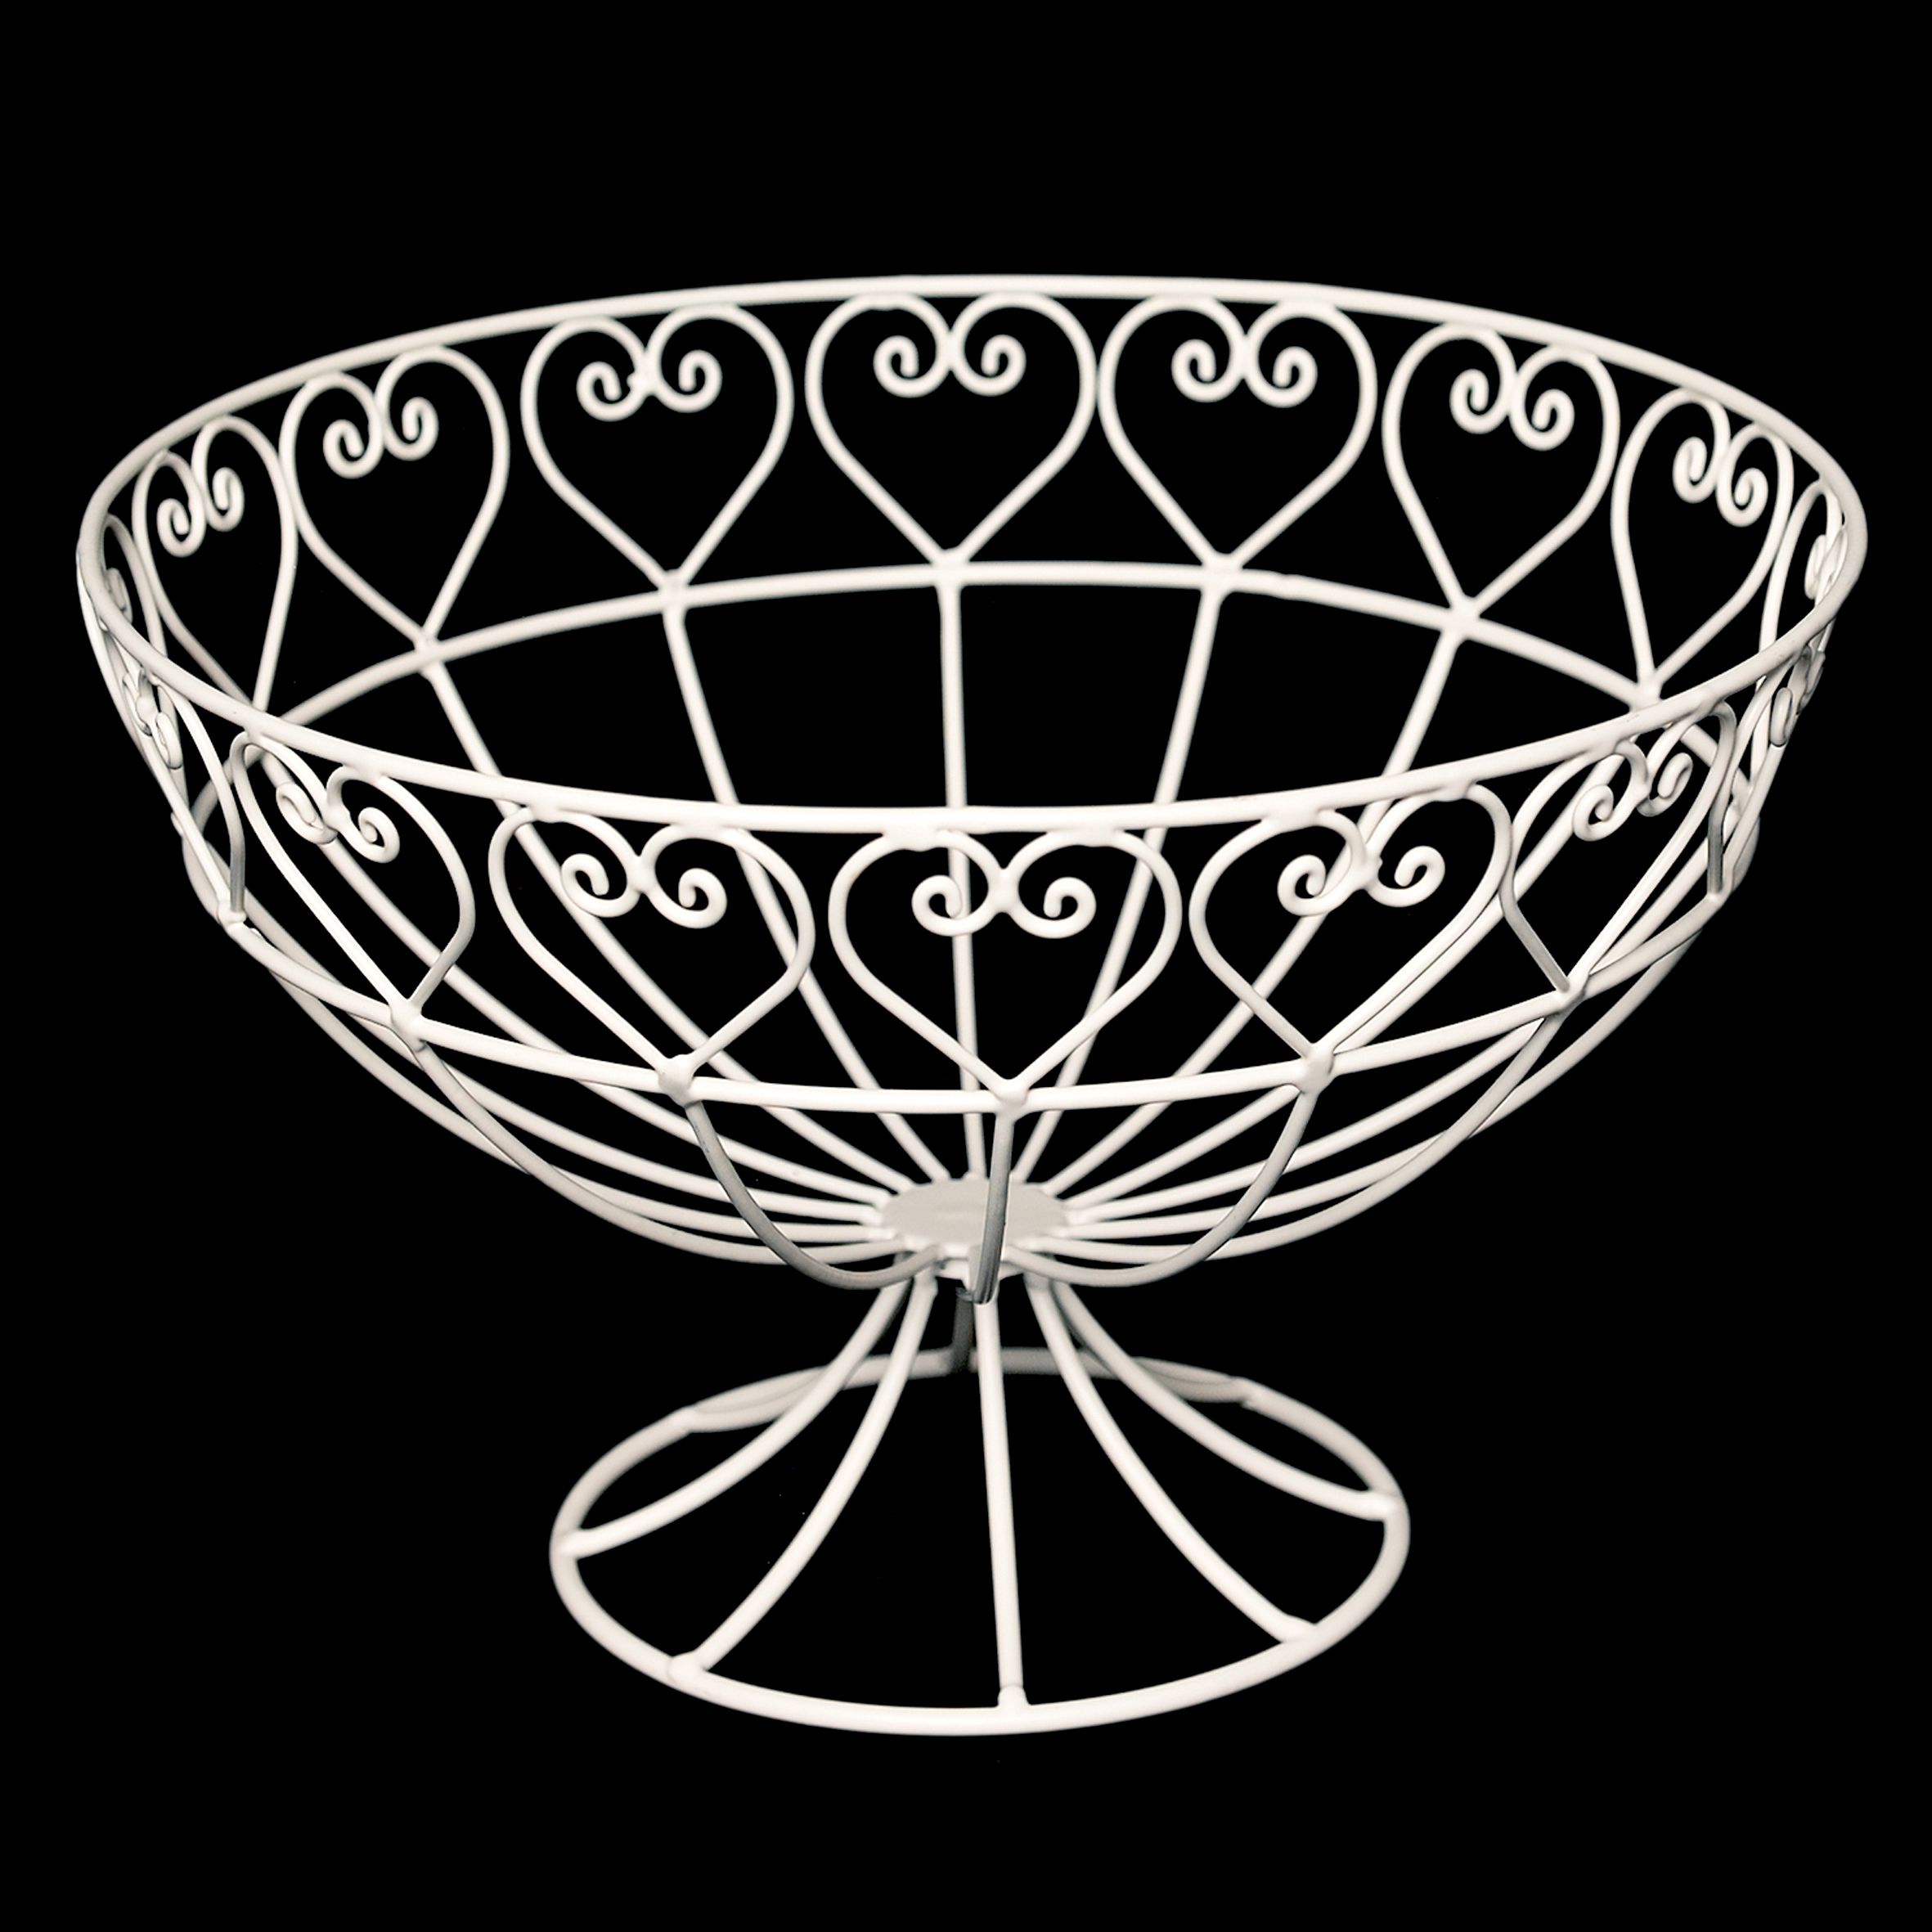 Metal Fruit Bowl Sweetheart Wire Fruit Bowl Rex London Dotcomgiftshop